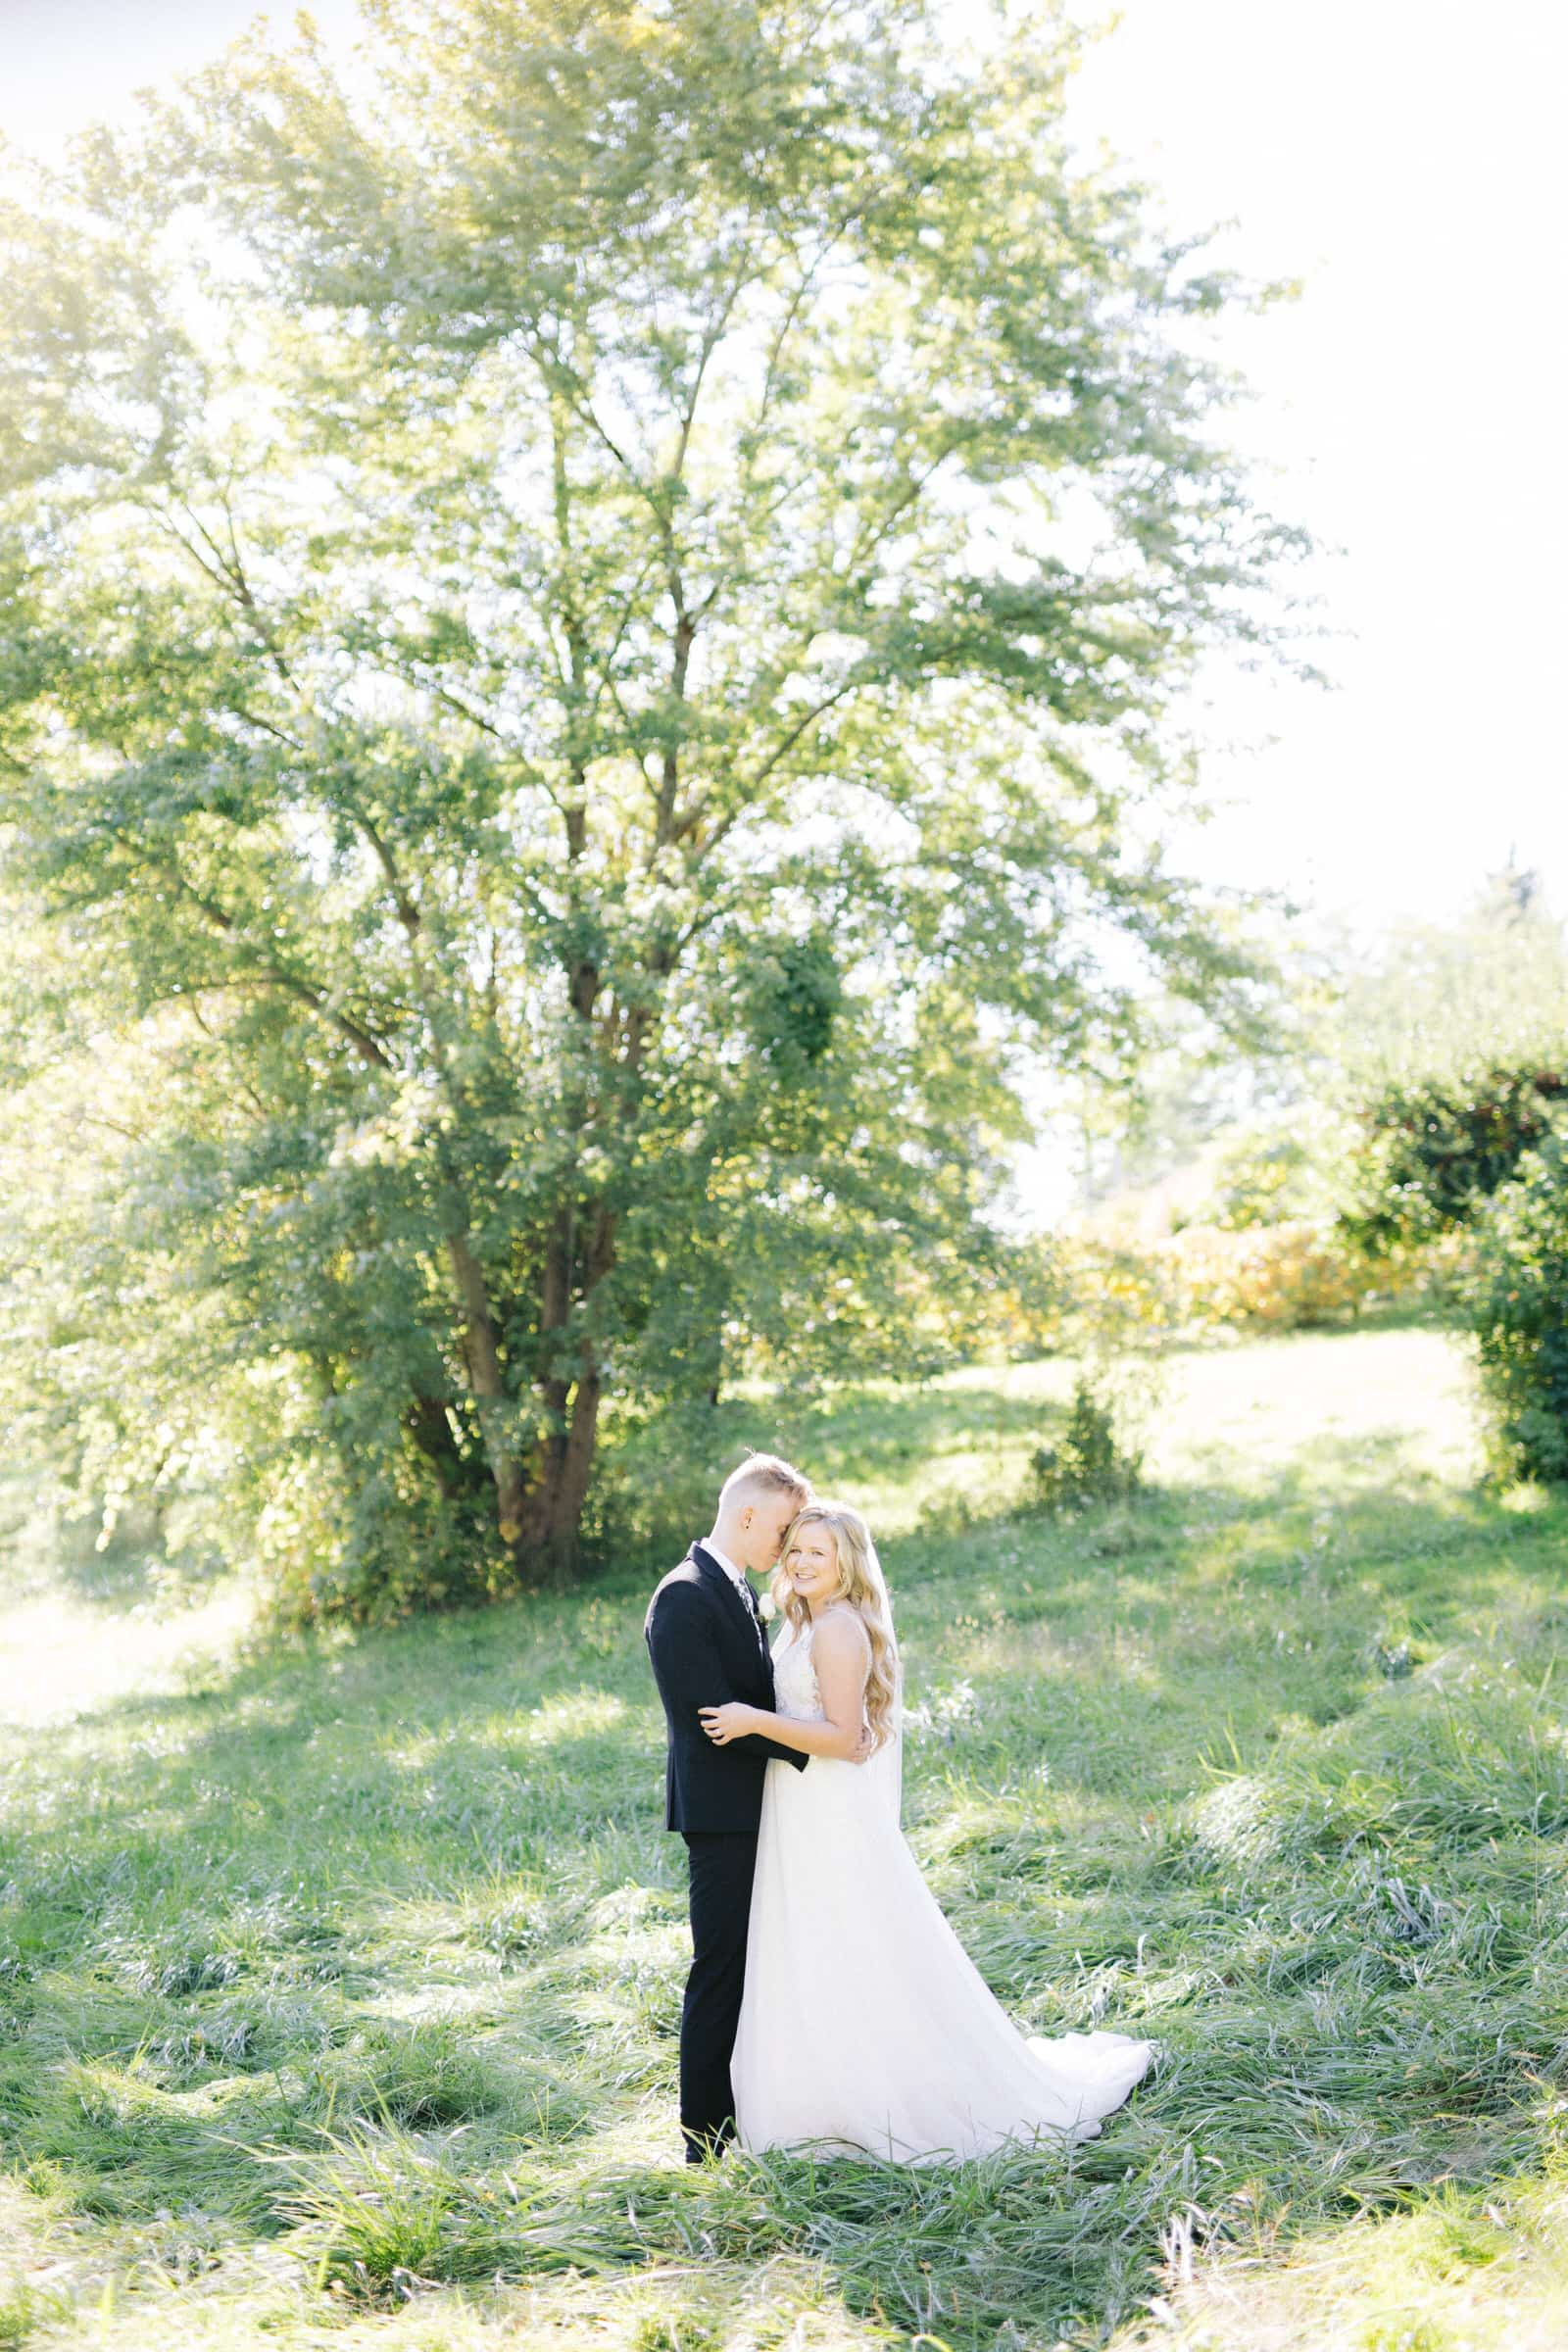 Bride & Groom holding each other at Woodland Weddings